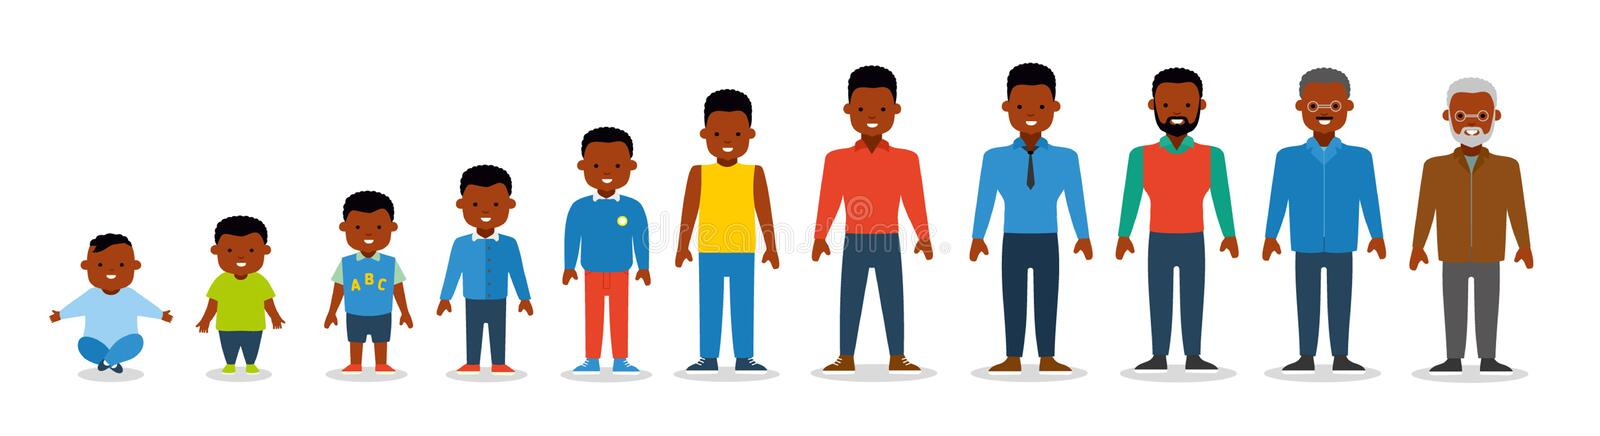 African american ethnic people. Generation of man. All age categories. on white background. Flat royalty free illustration